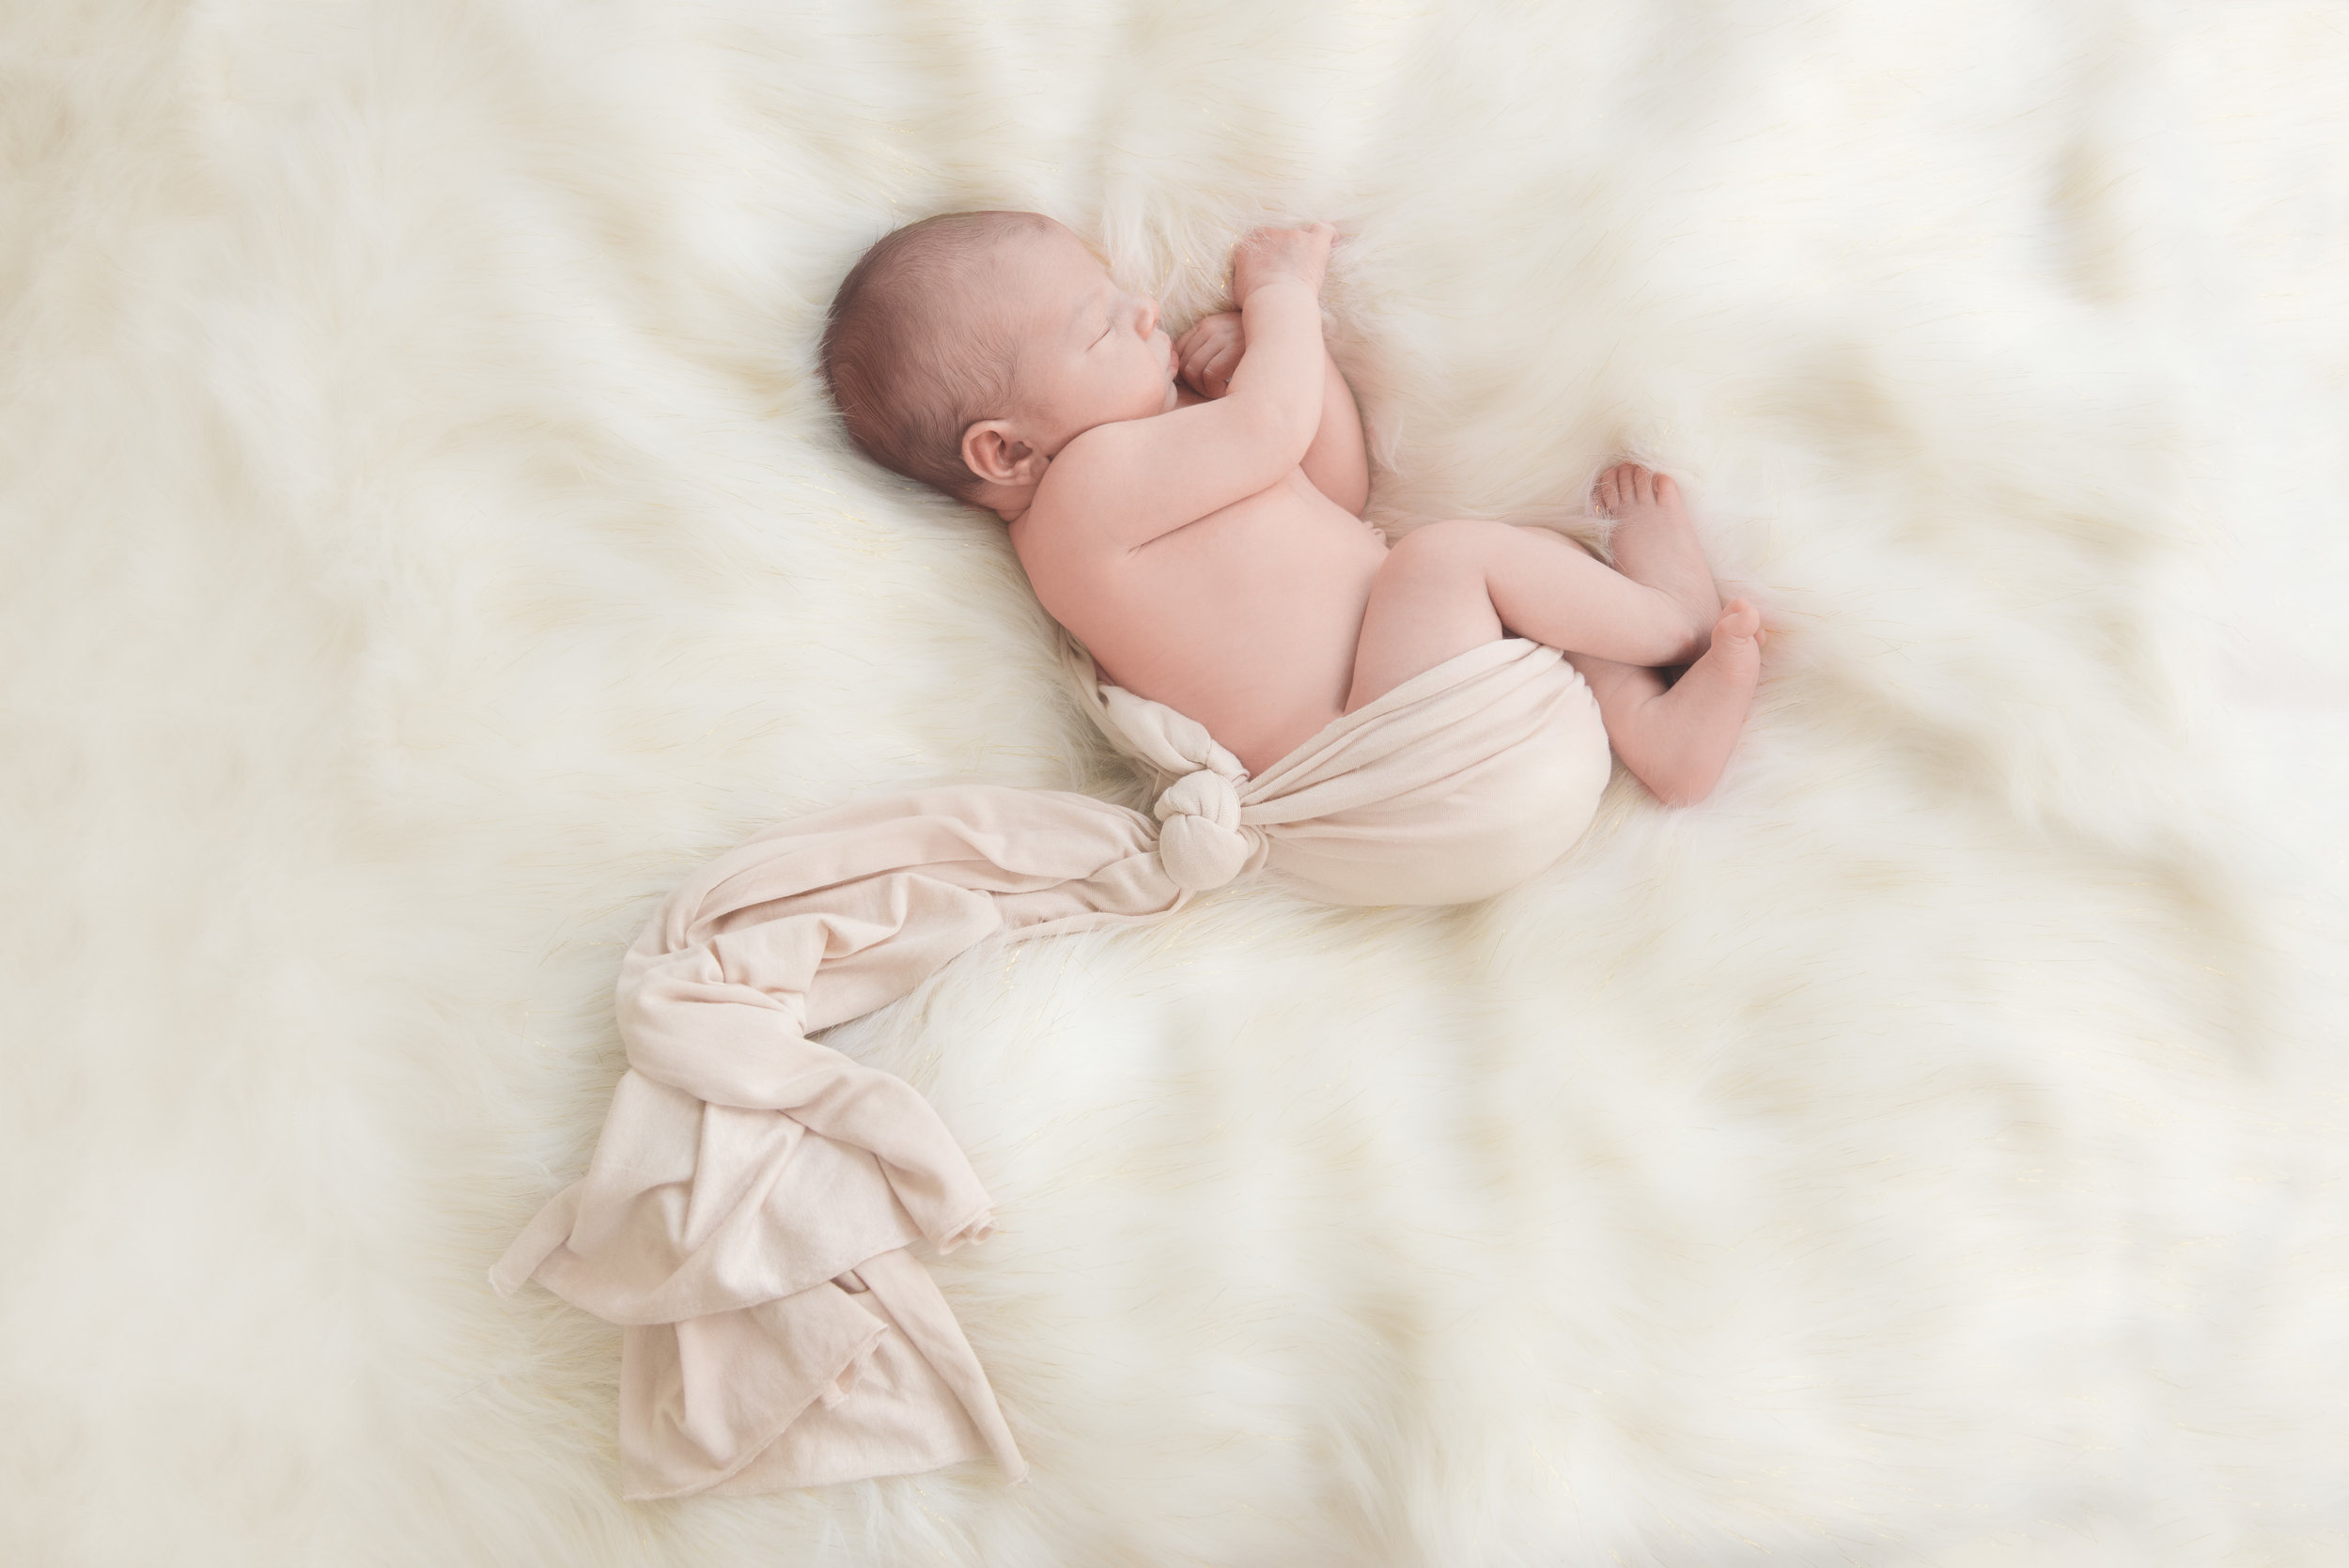 illinois newborn photographer, newborn photographer, lincoln illinois newborn photographer, central illinois newborn photographer, decatur illinois newborn photographer, bloomington illinois newborn photographer, normal illinois newborn photographer, springfield illinois newborn photographer, peoria illinois newborn photographer, photos by ariel